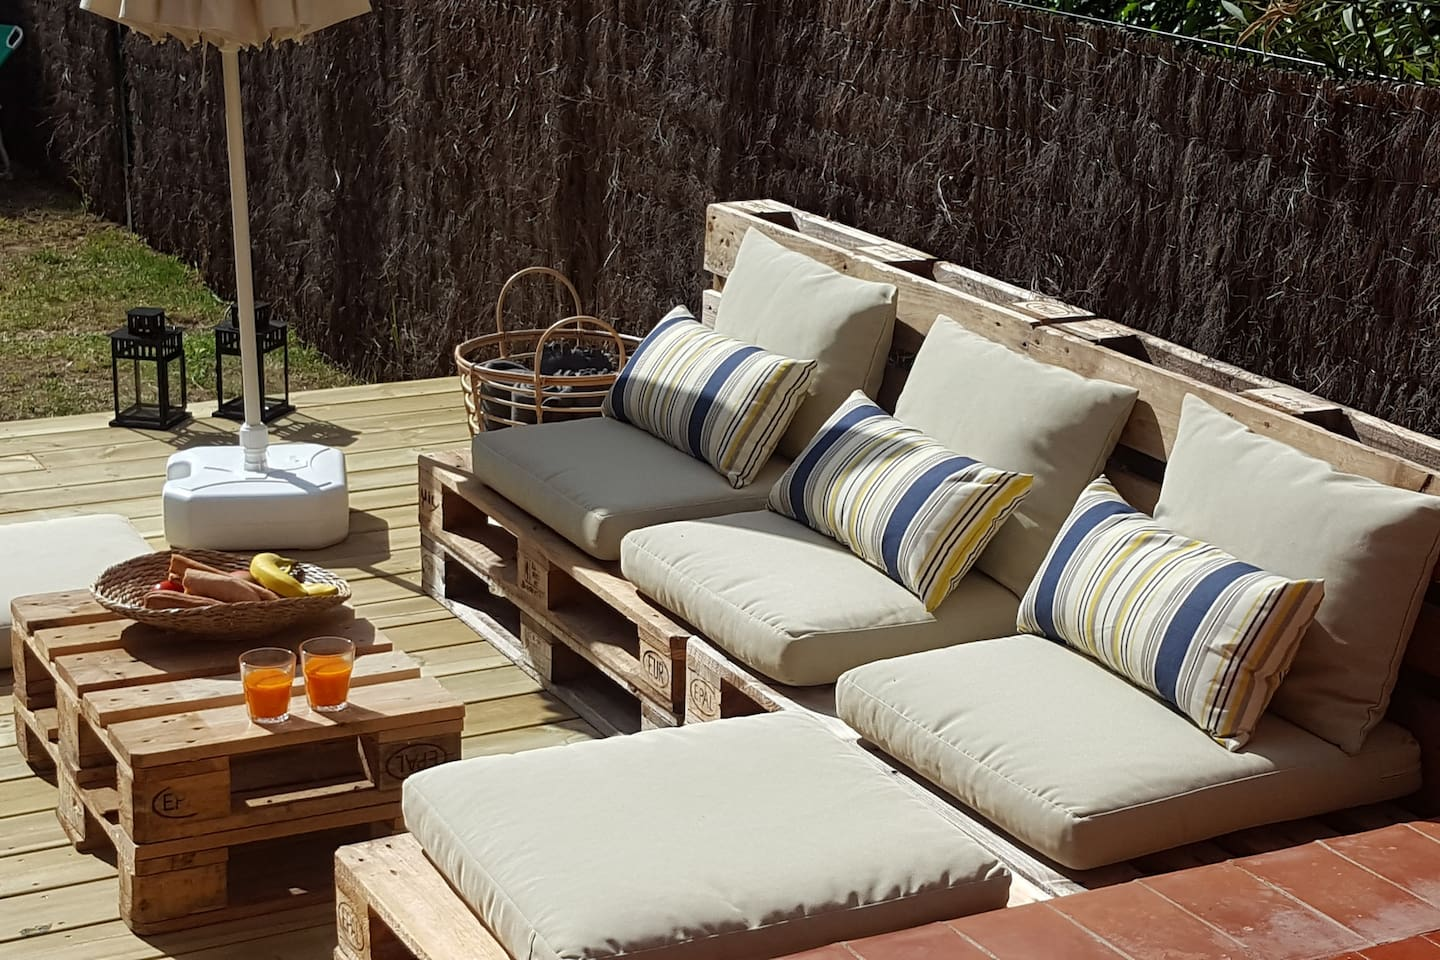 Relax in the sun in the pallet sofa.